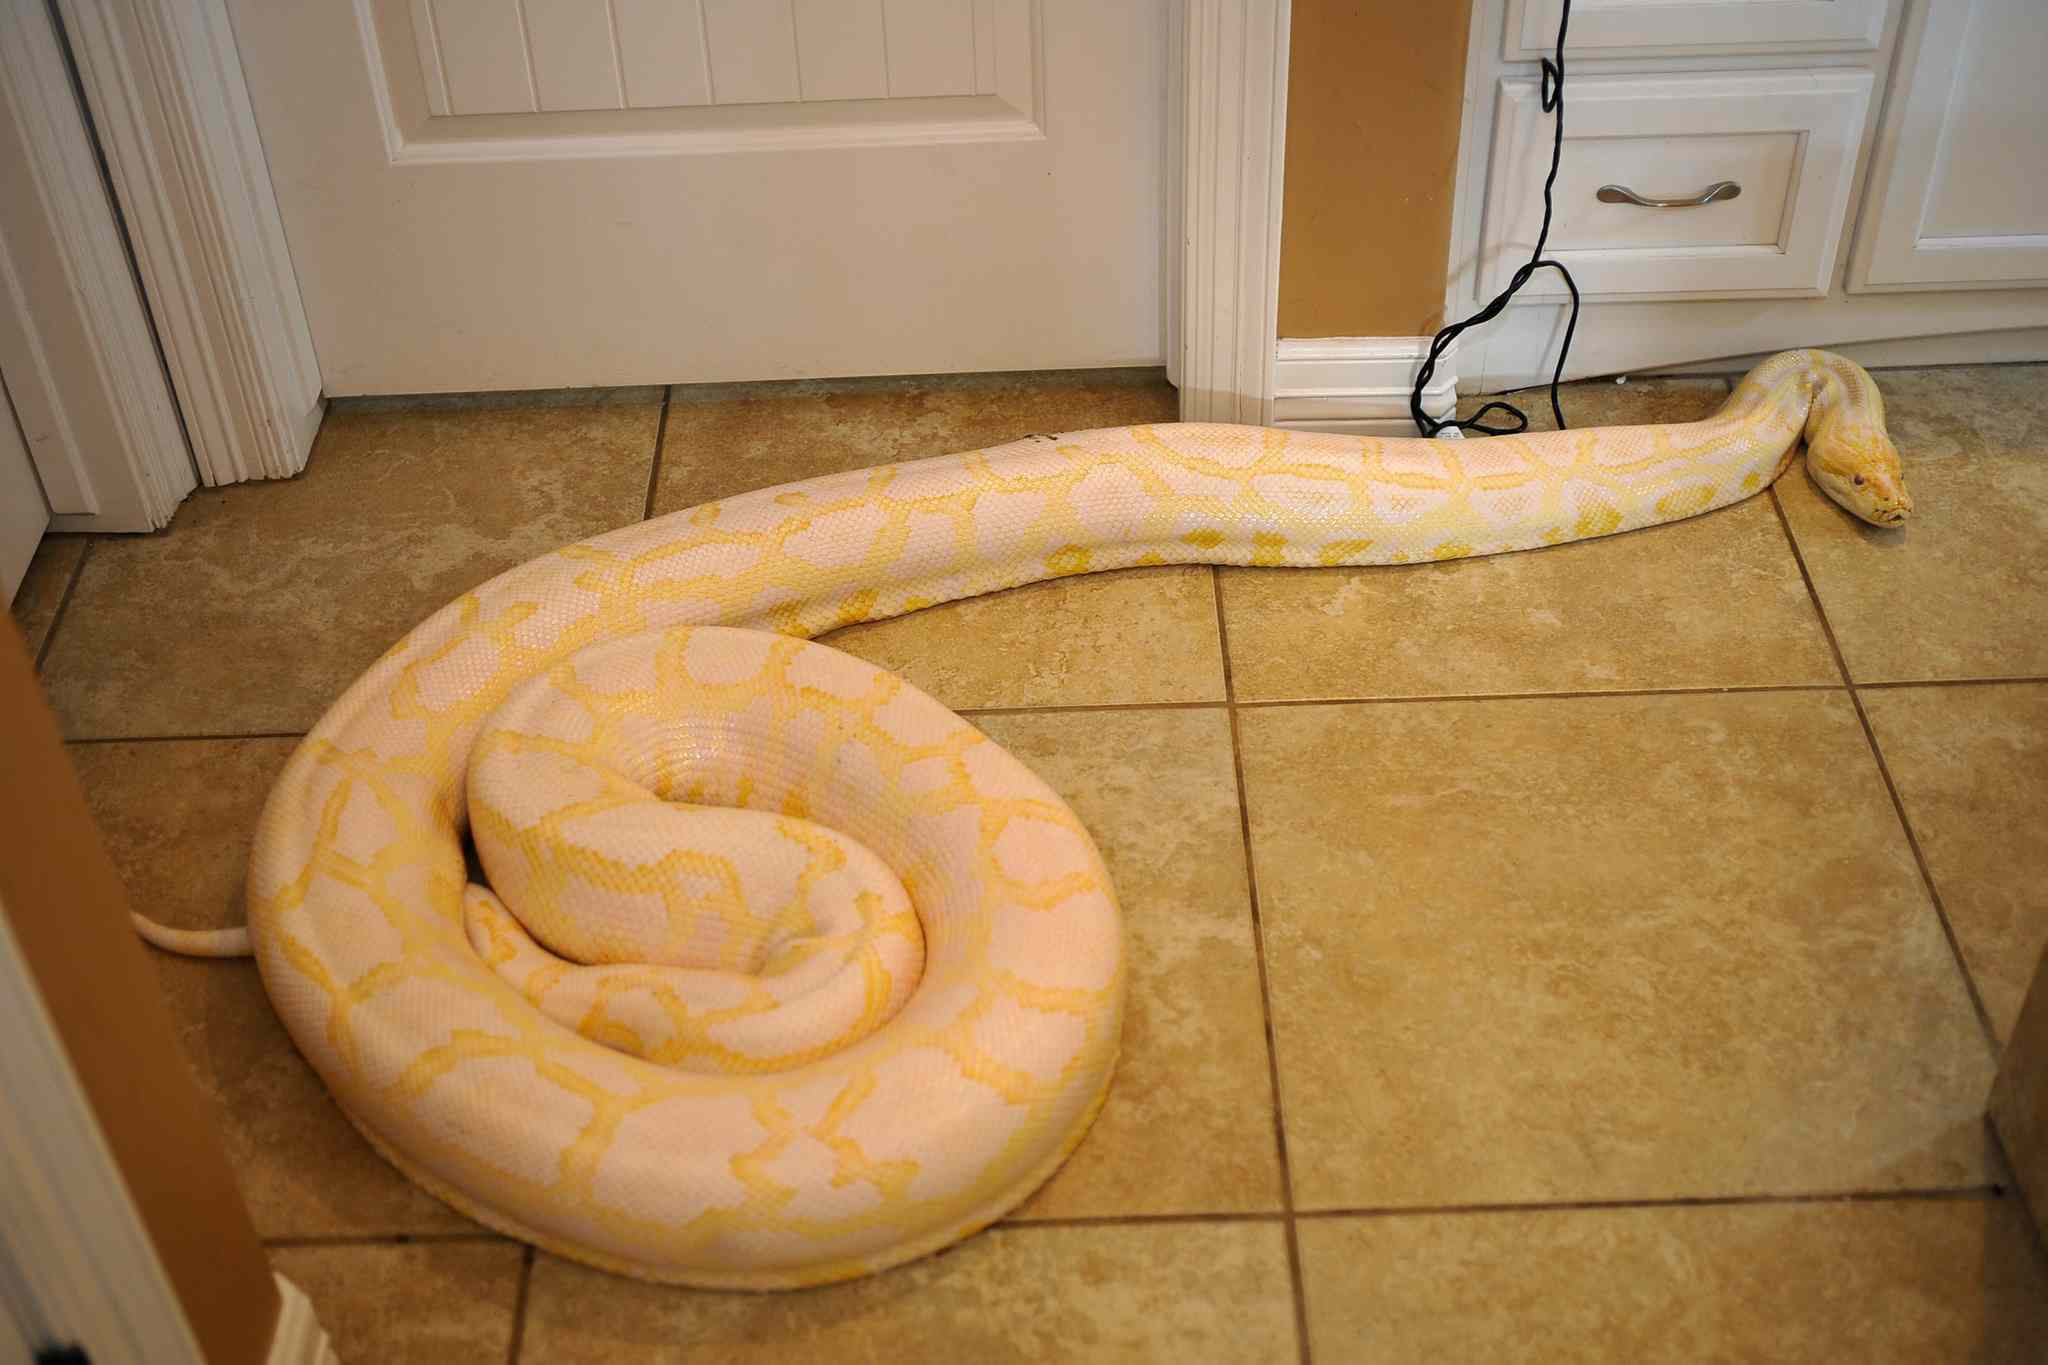 (e) any member of the family Pythonidae, including, but not limited to, the African rock python, the Indian or Burmese python (pictured), the Amethystine or scrub python, except members of the family Pythonidae reaching an adult length of no greater than two (2) meters.